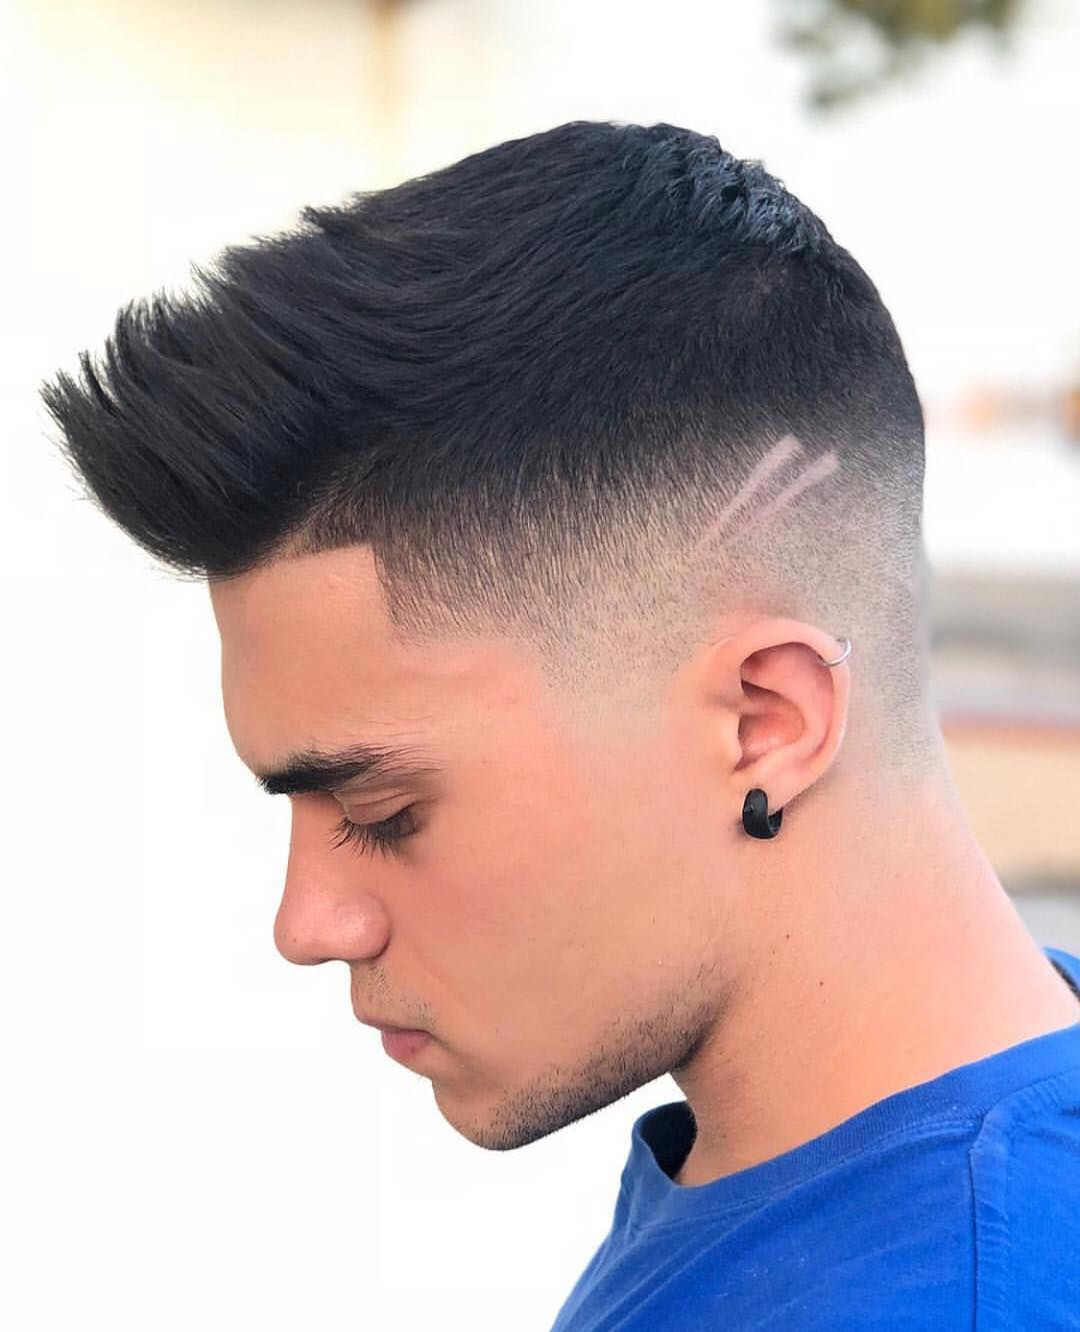 Pin by dany torres on cortés de pelo pinterest hair styles hair